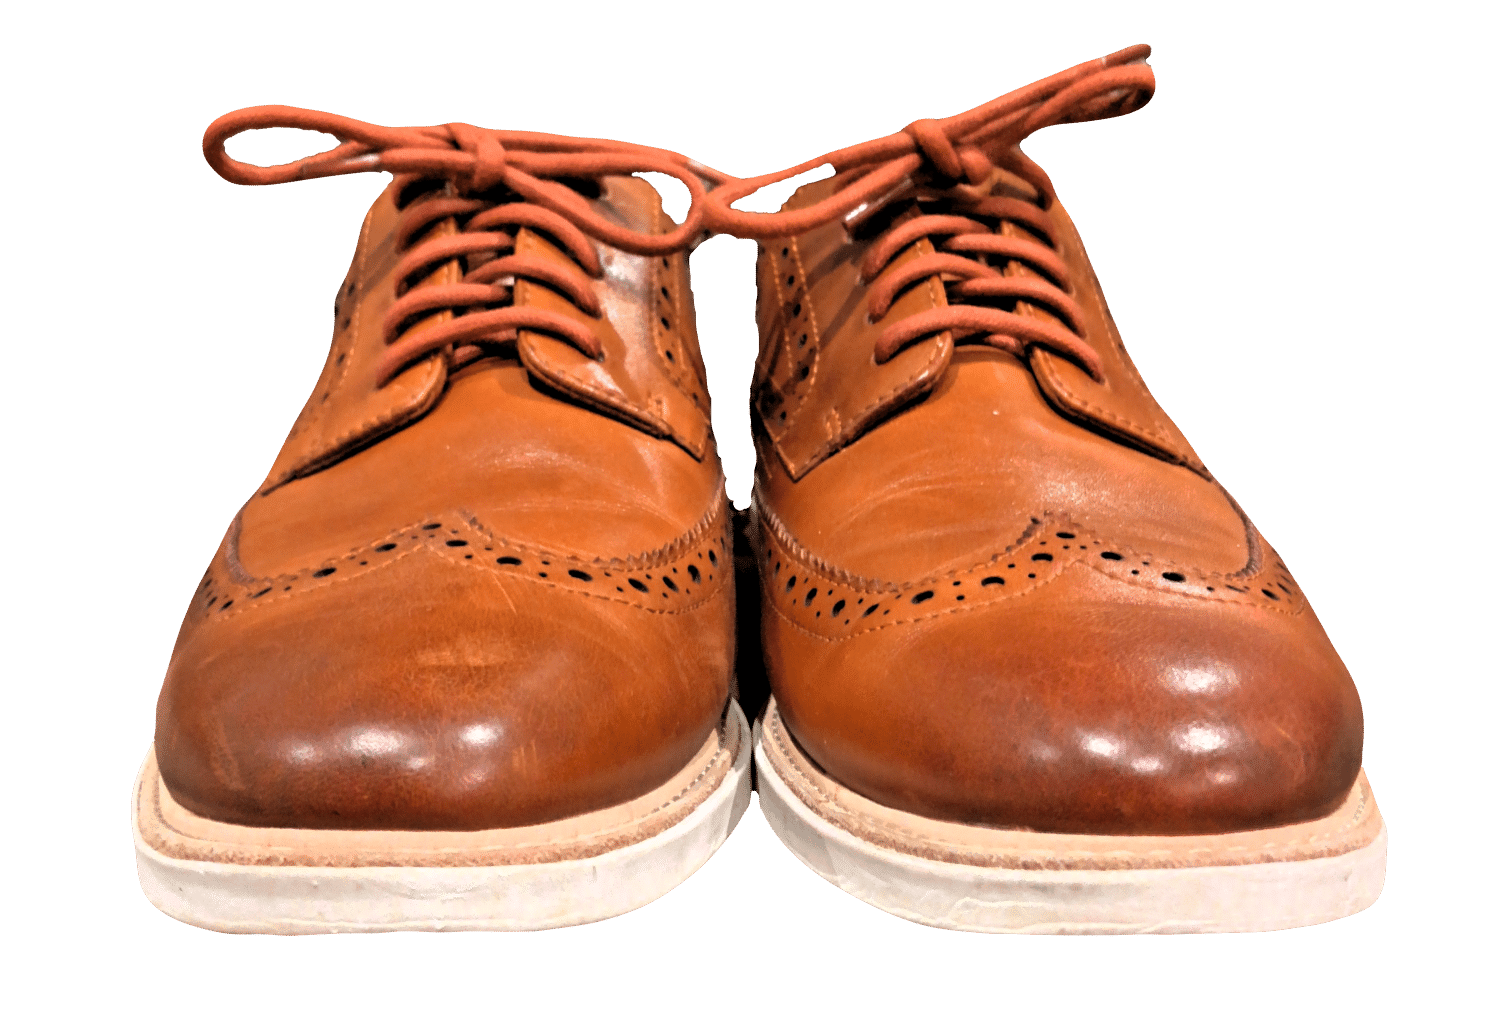 ZeroGrand Review - Are the Cole Haan Shoes Worth it? 2